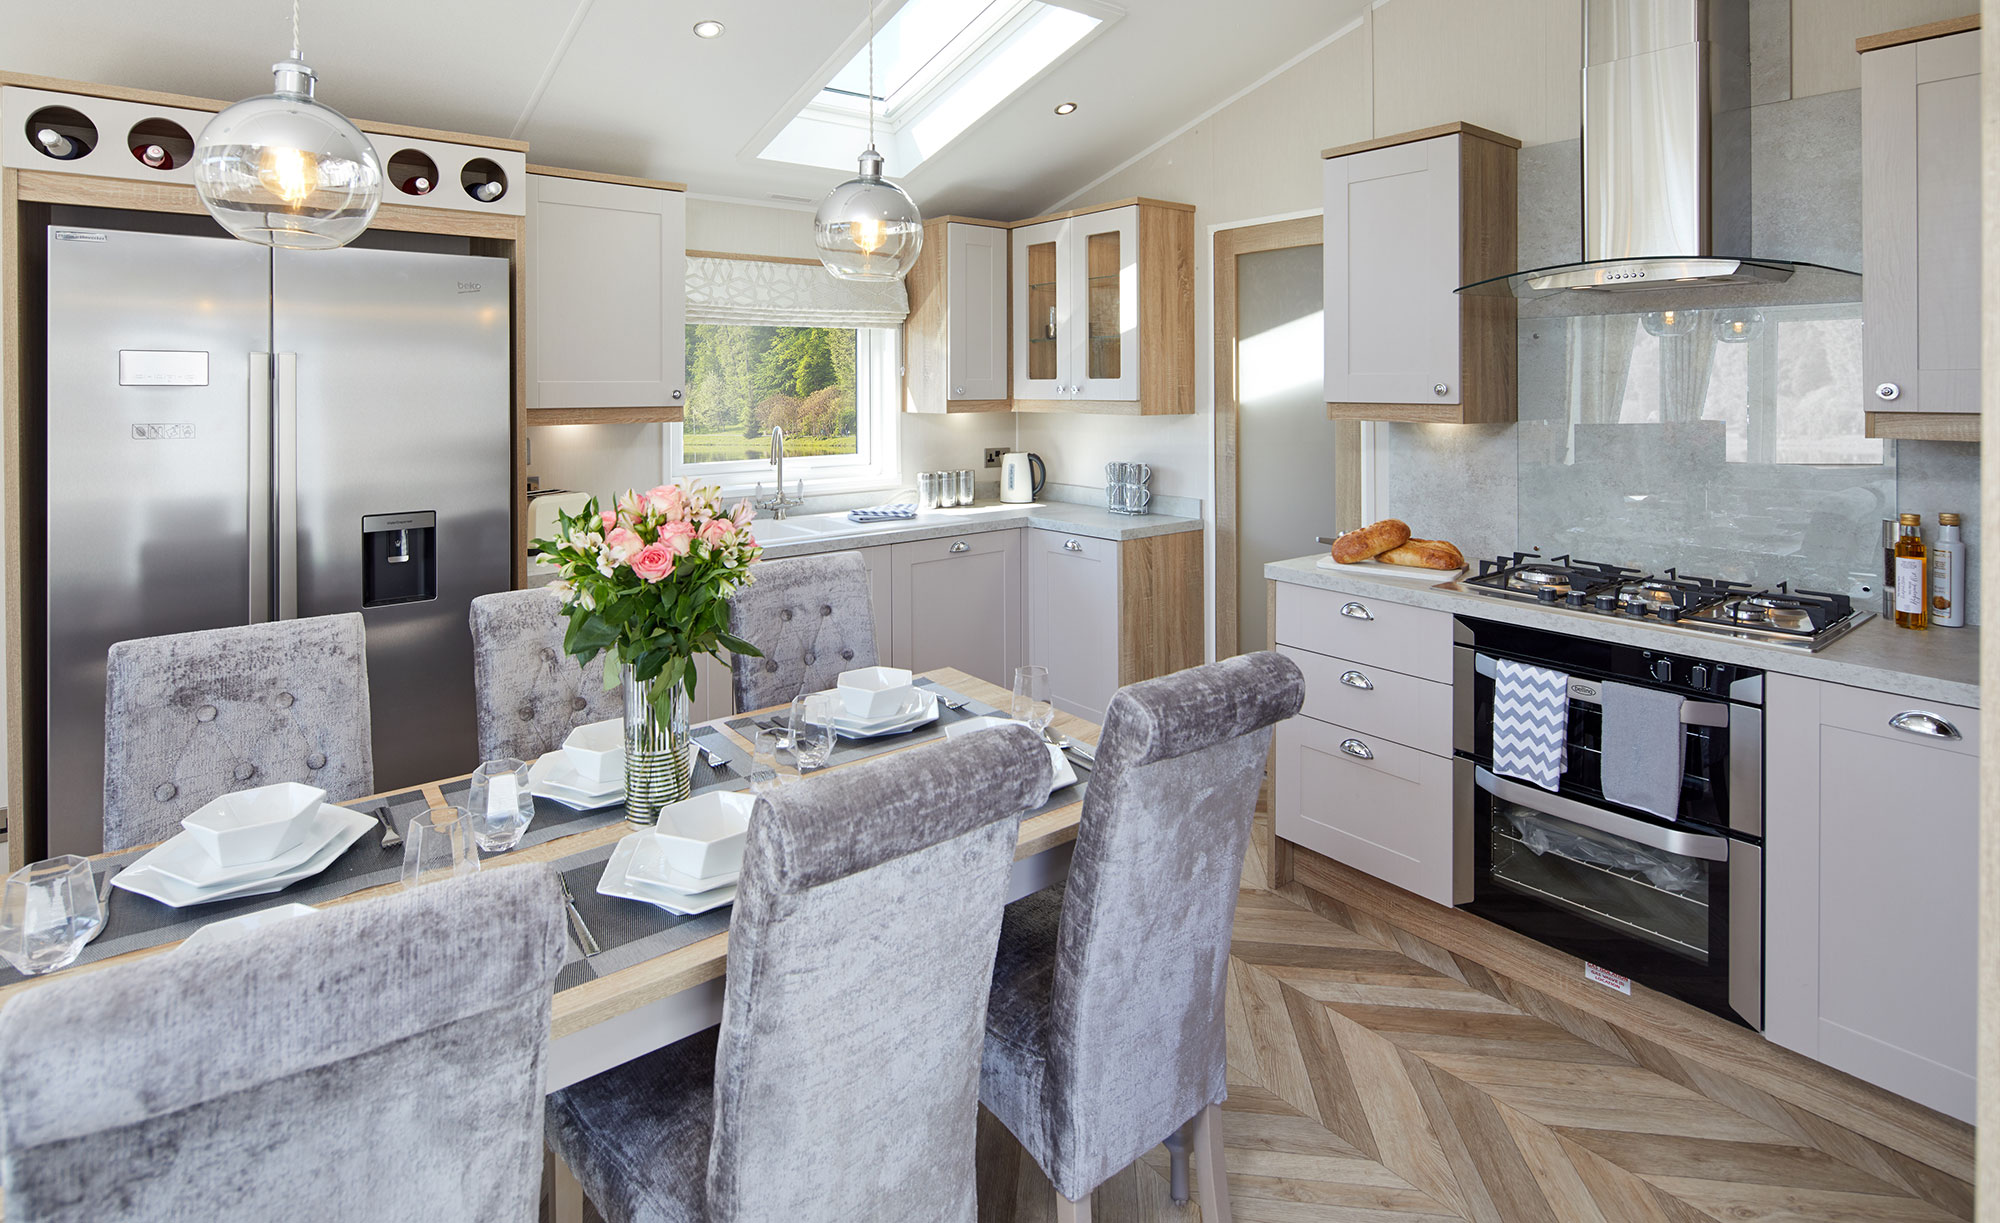 Interior shot of the kitchen and dining area in the Willerby Vogue Classique